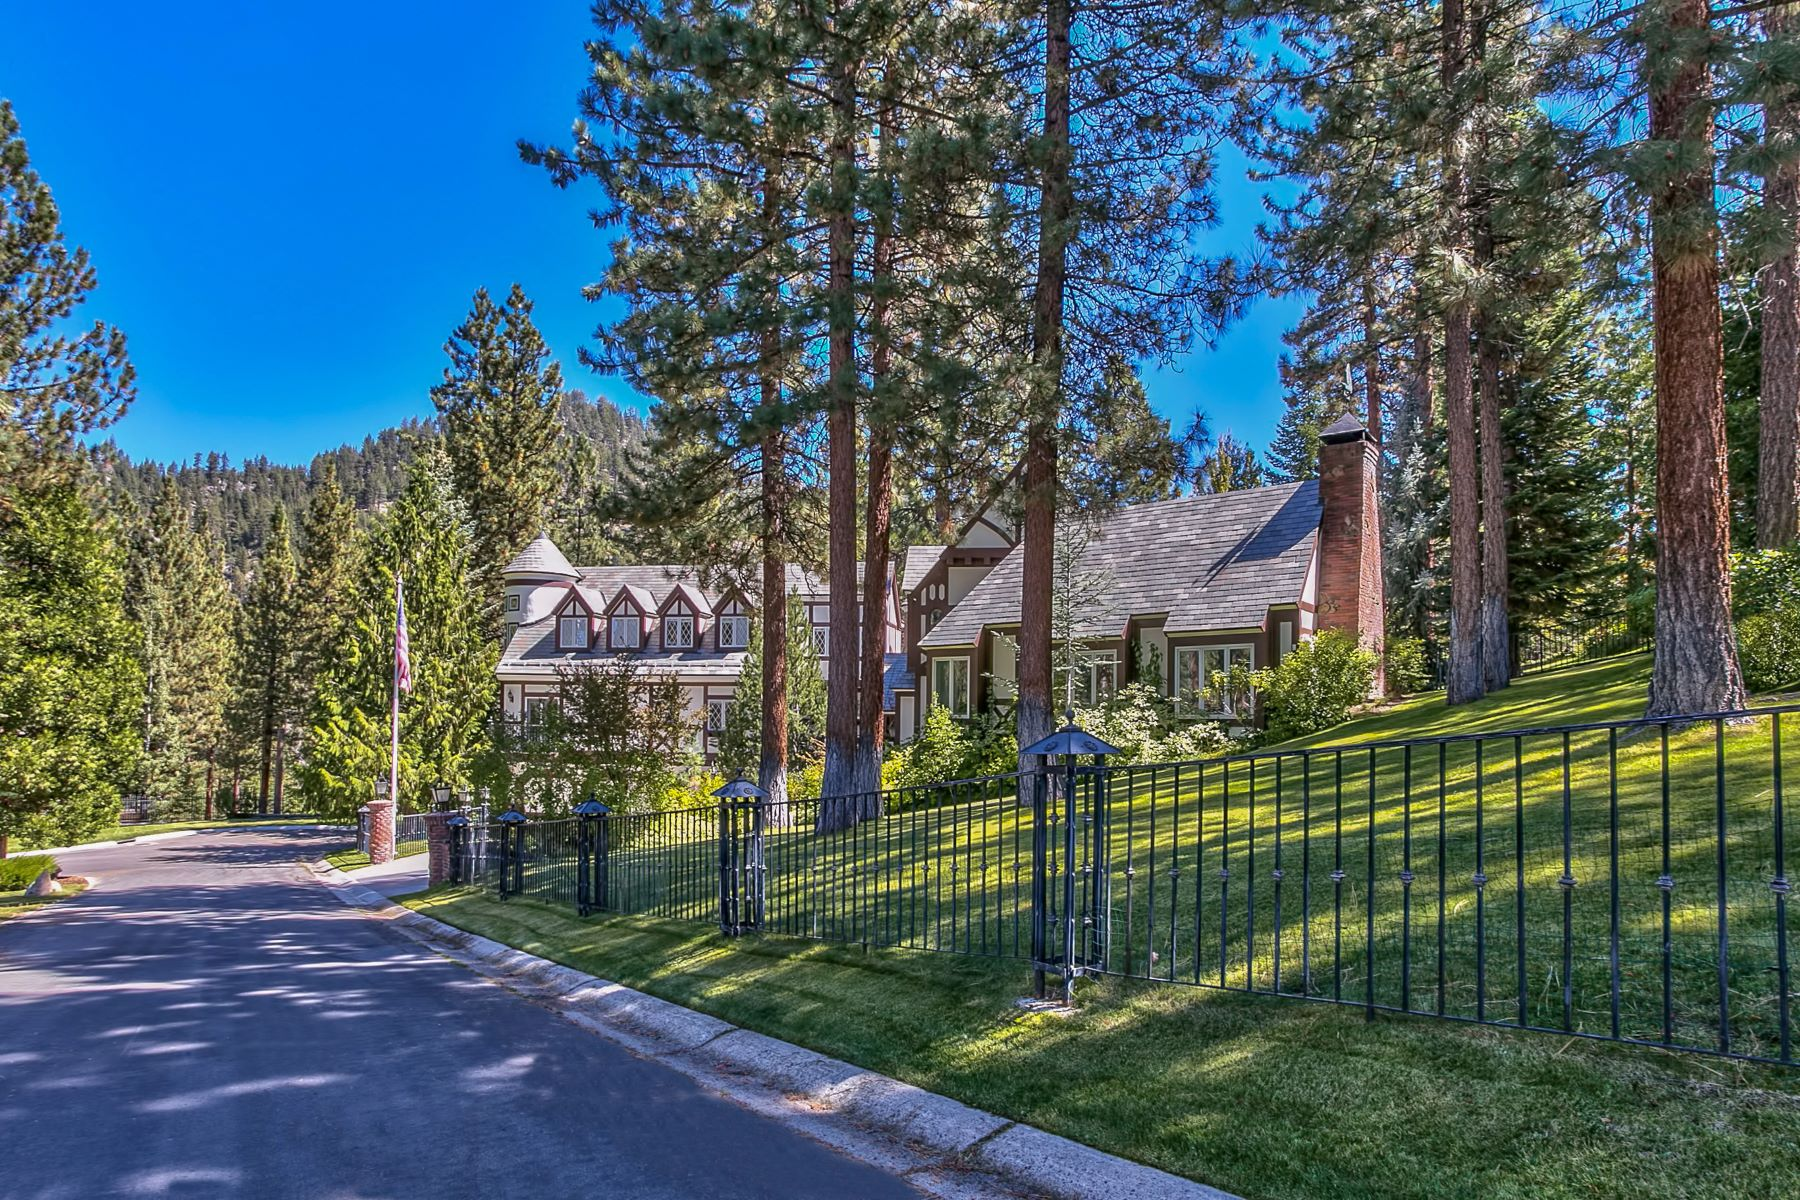 Additional photo for property listing at Classic Tahoe Tudor 1273 Hidden Woods Drive Glenbrook, Nevada 89413 United States